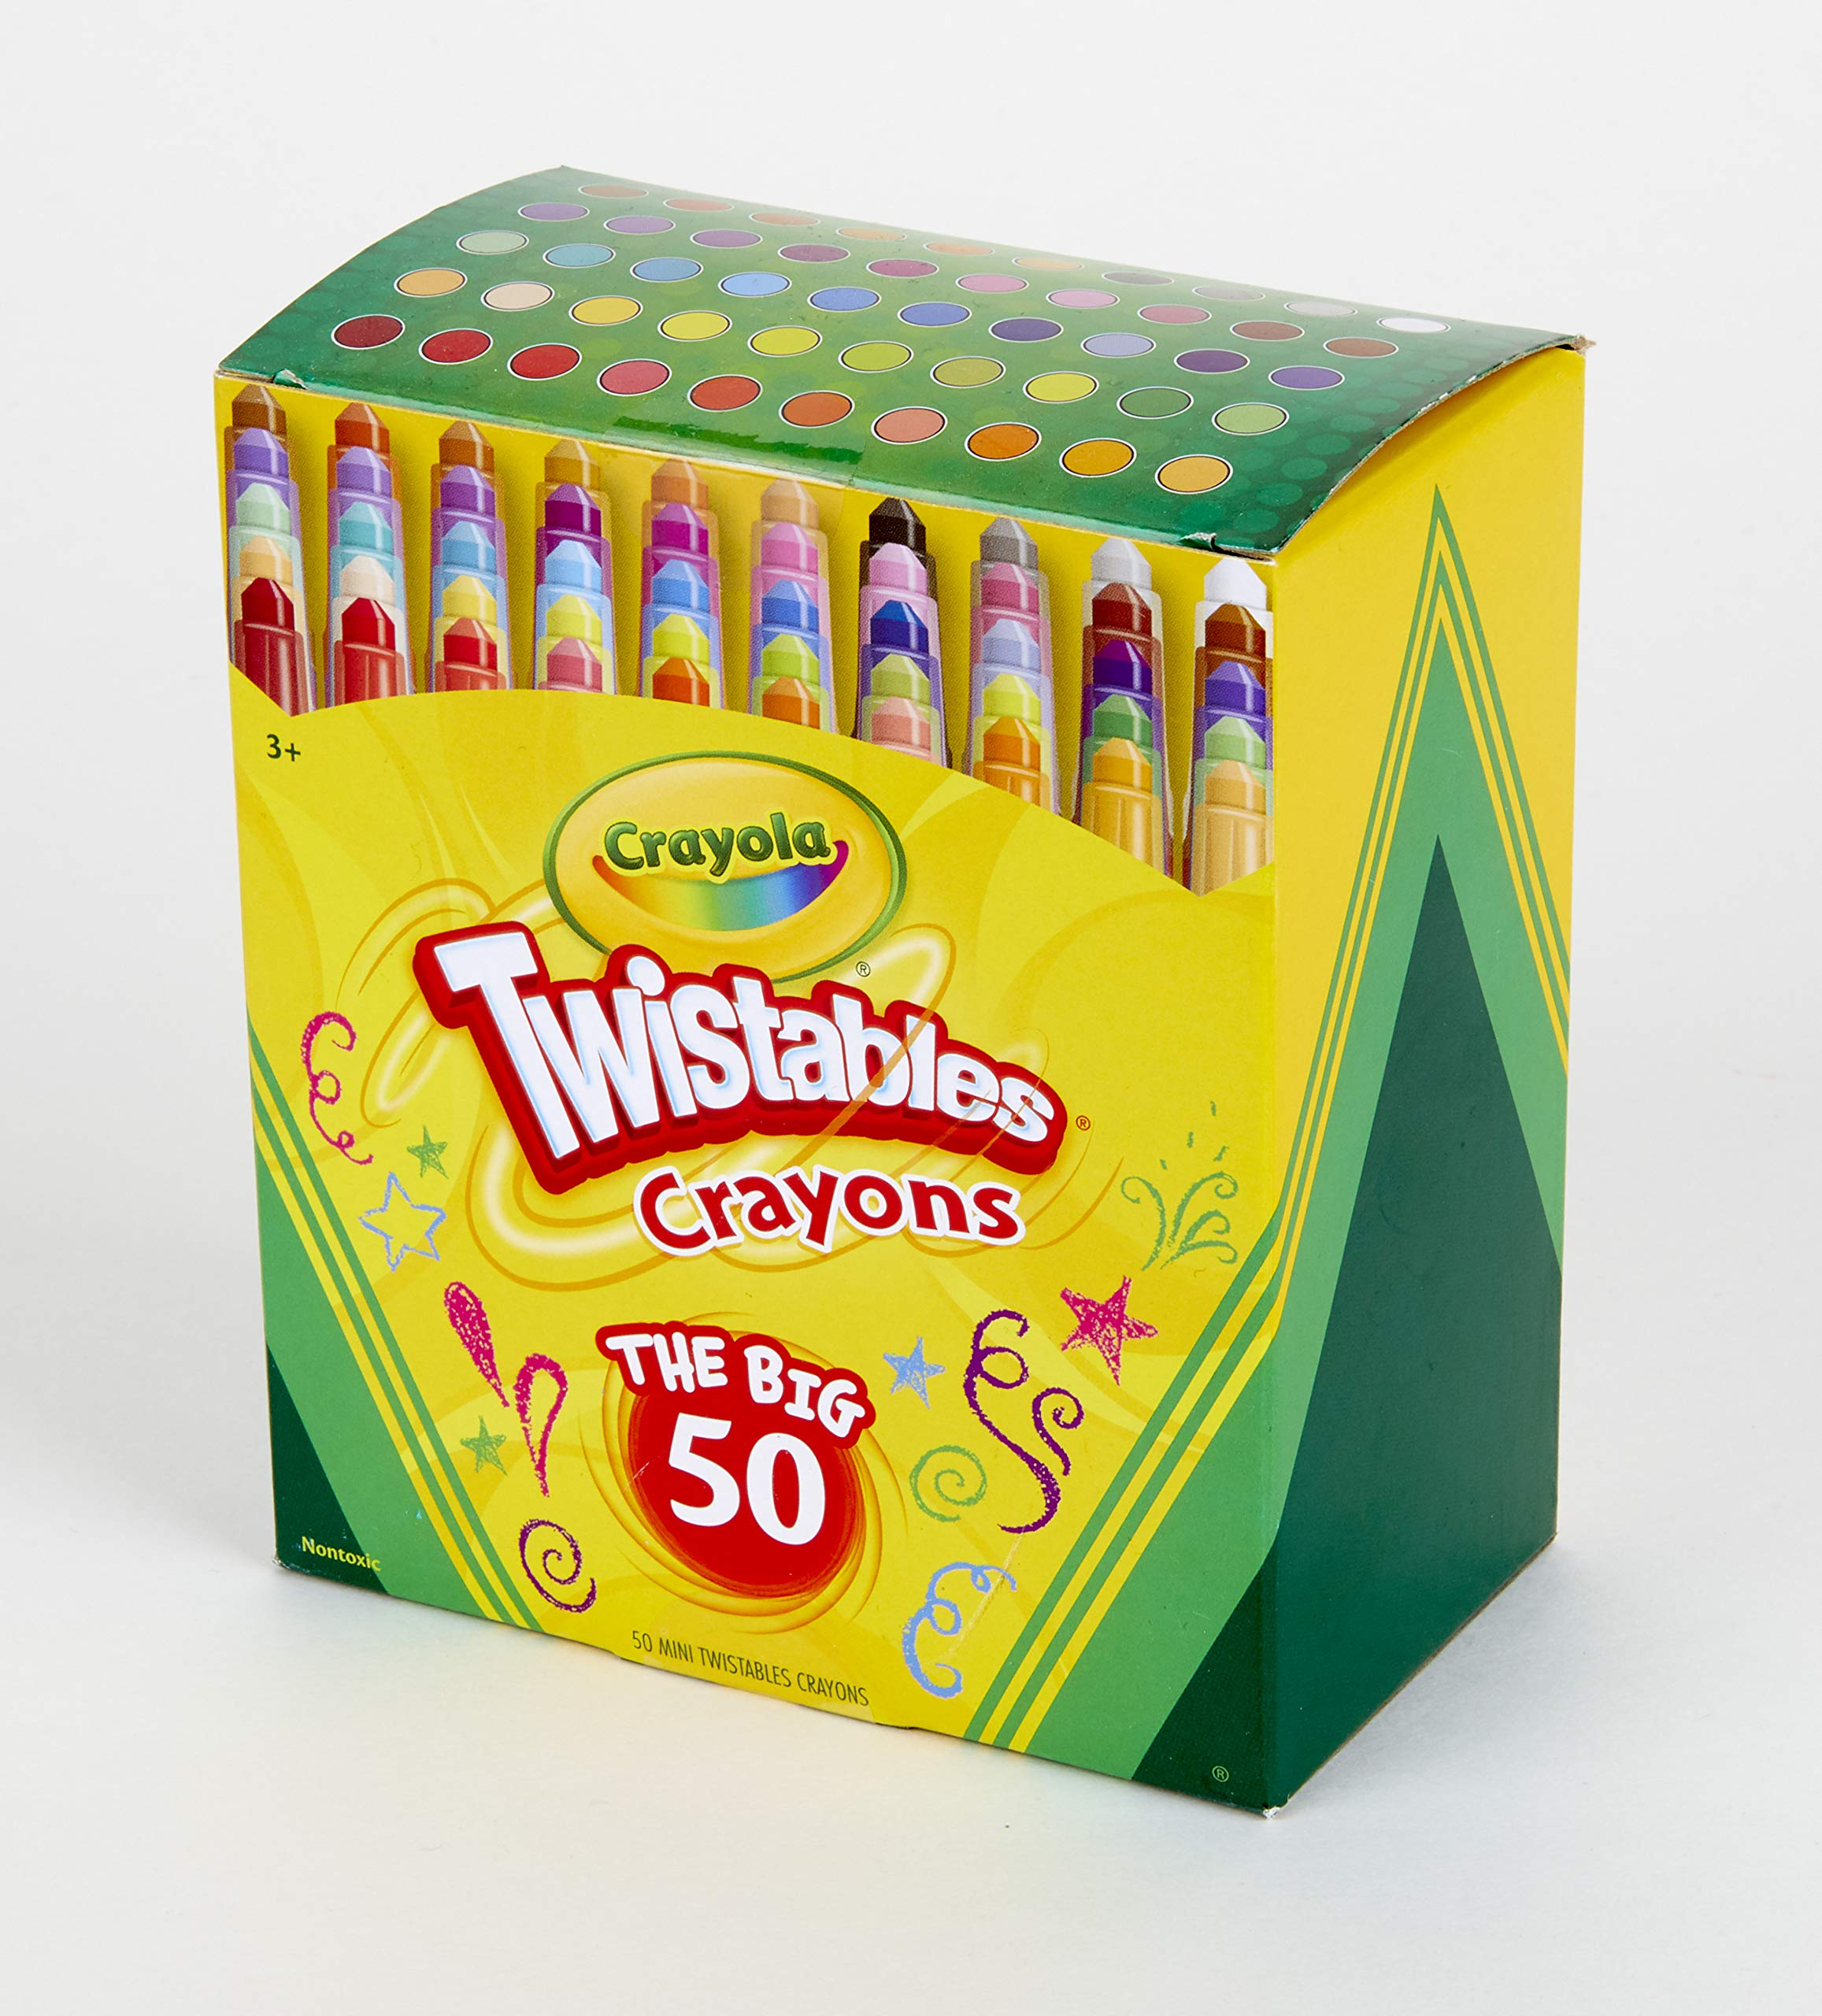 Crayola Mini Twistables Crayons, Amazon Exclusive, School Supplies, Great For Coloring Books, 50Count by Crayola